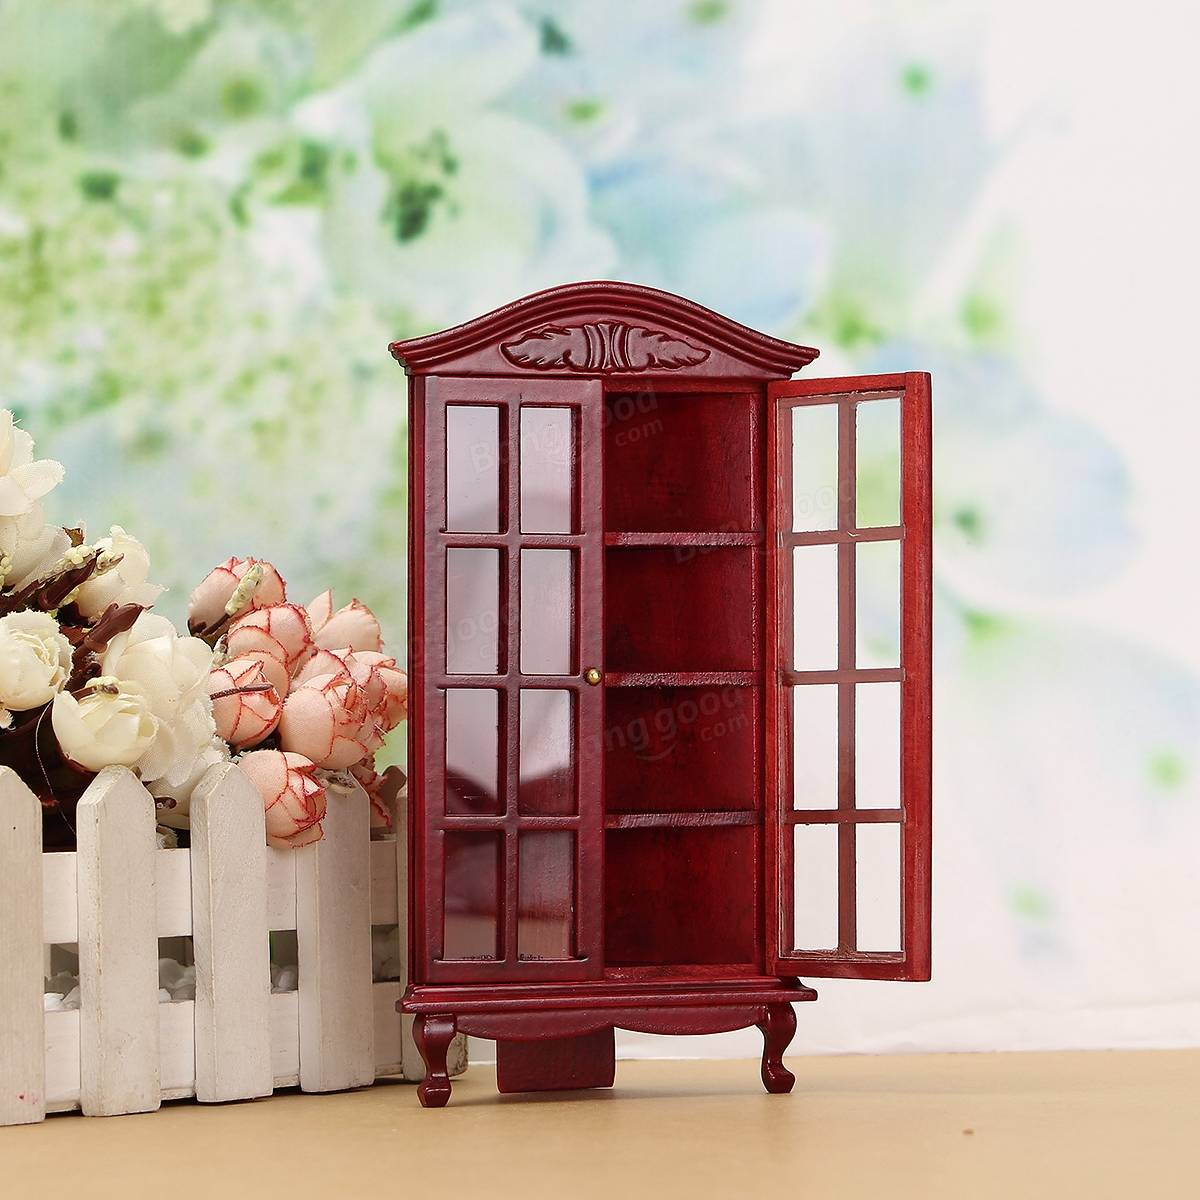 112 Dollhouse Miniature Furniture Modern White Red